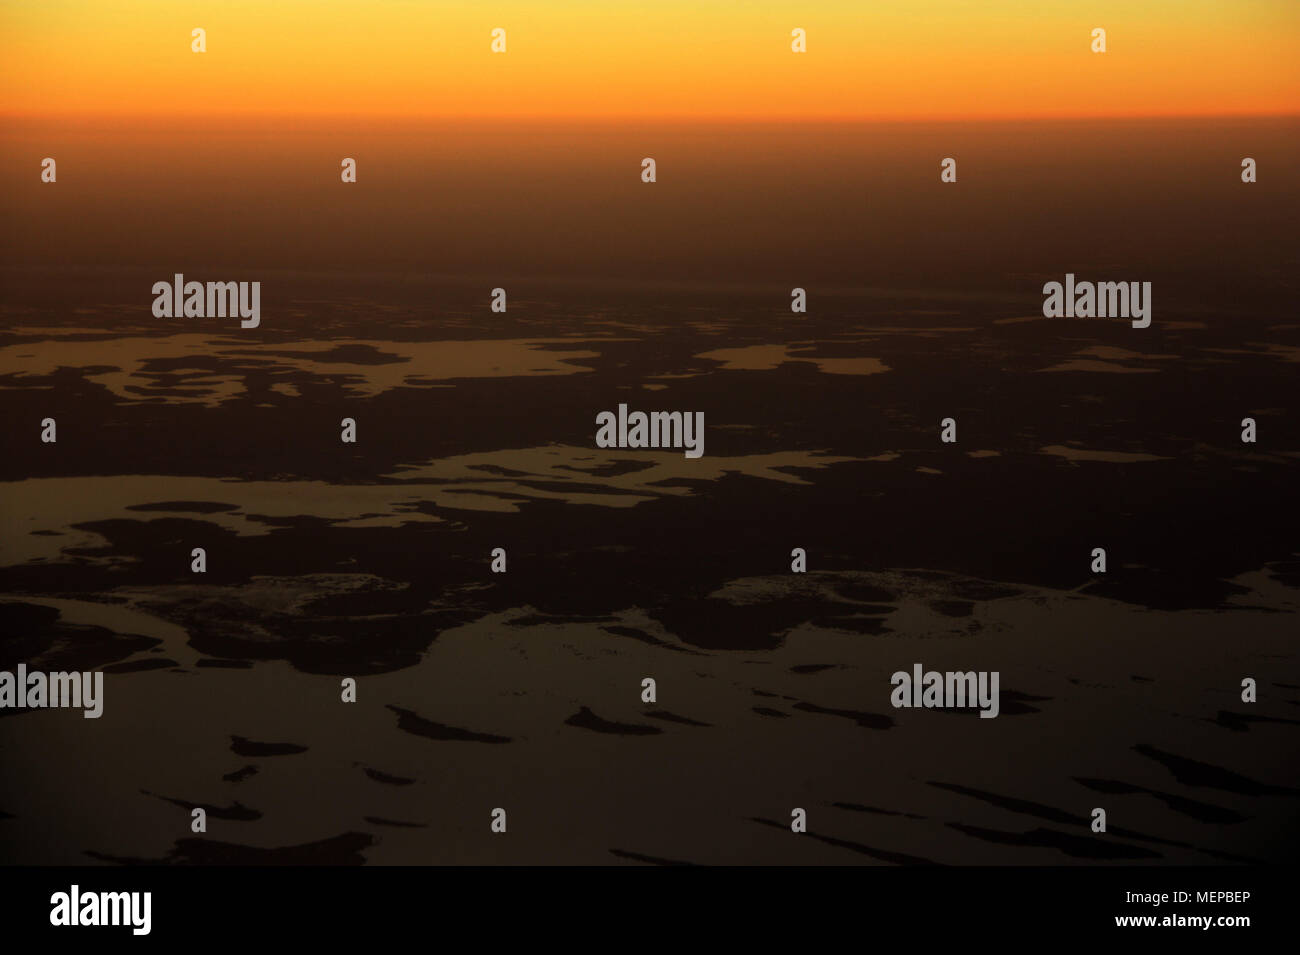 Lake Chad seen from the Airplane during a beautiful Sunset - Stock Image